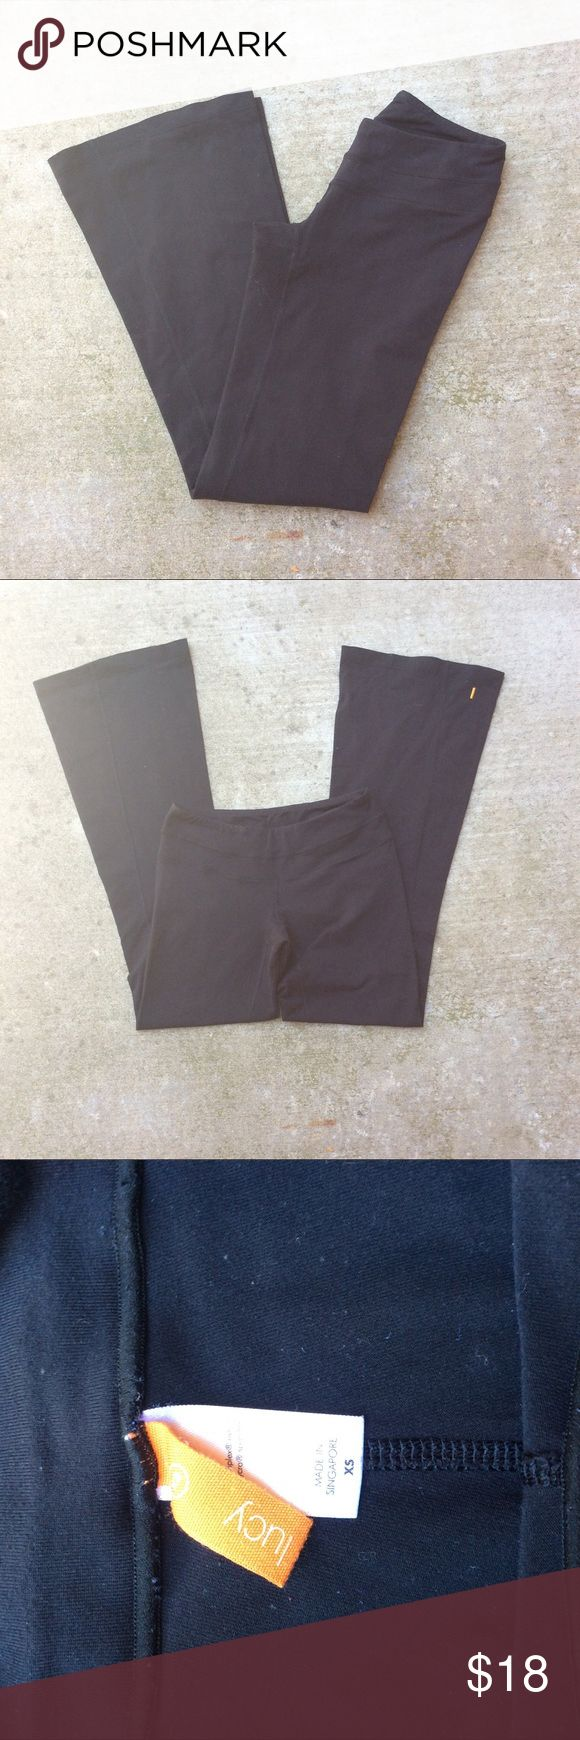 """Lucy wide leg yoga pants Lucy activewear wide leg yoga pants   Size XS   Black   Approx measurements laying flat:  Waist without stretch 14""""  Inseam 32""""   Gently used with some piling Lucy Pants Leggings"""